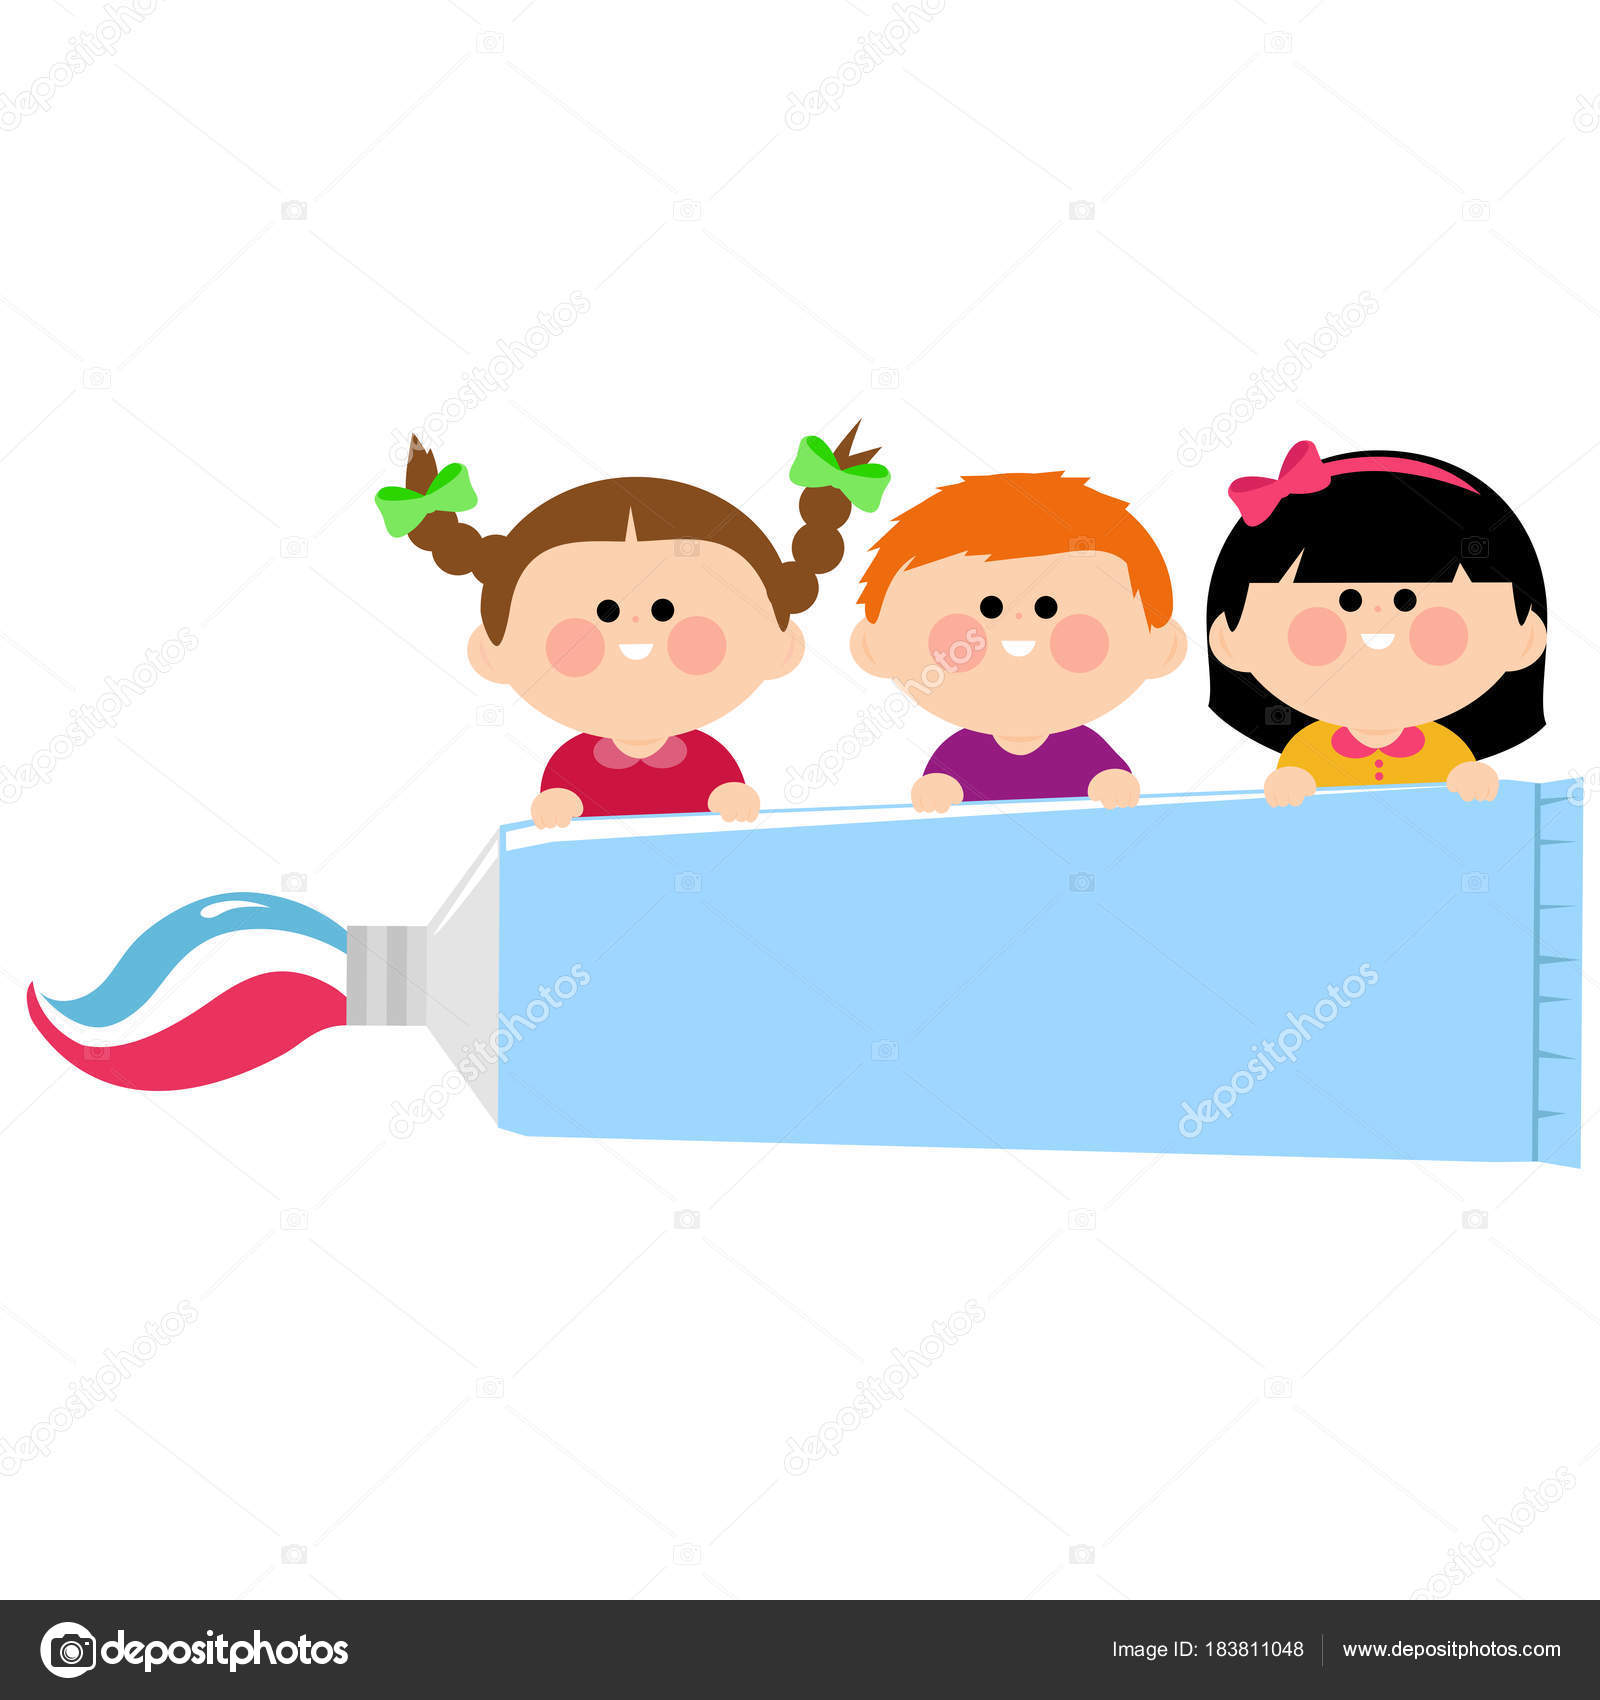 Free PNG Toothpaste Clip Art Download - PinClipart